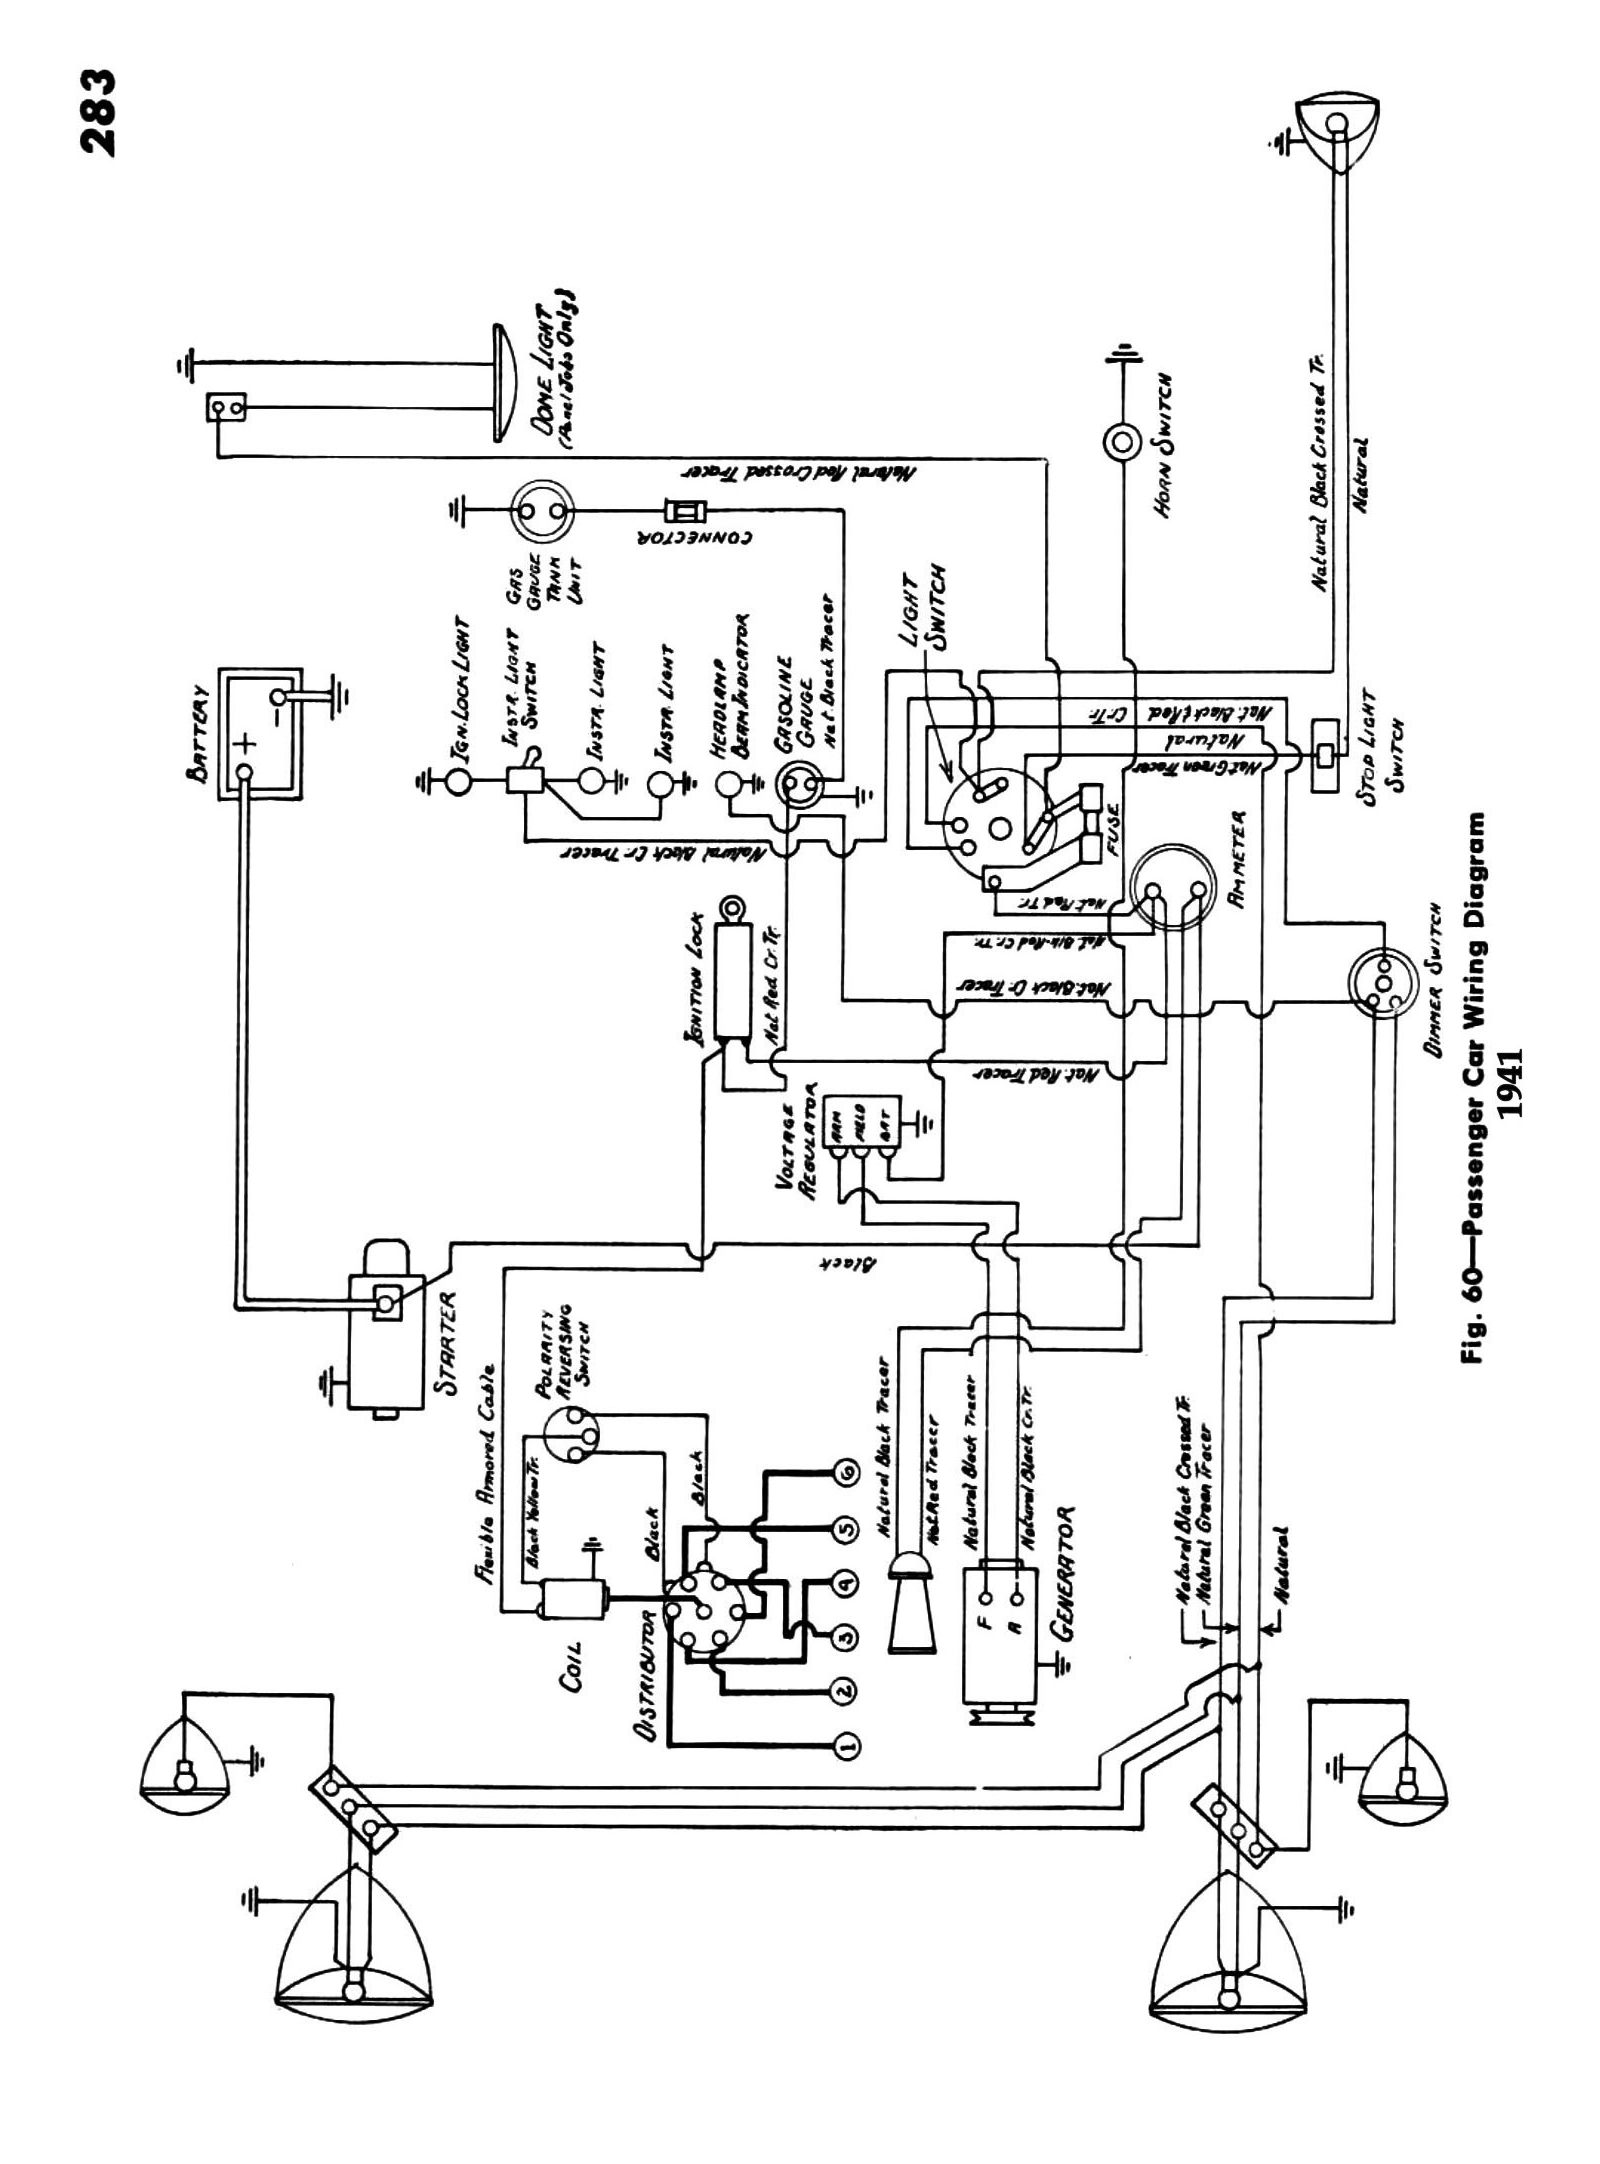 1984 Kenworth Dash Wiring Diagram Will Be A Thing 1999 Chevy Diagrams 1995